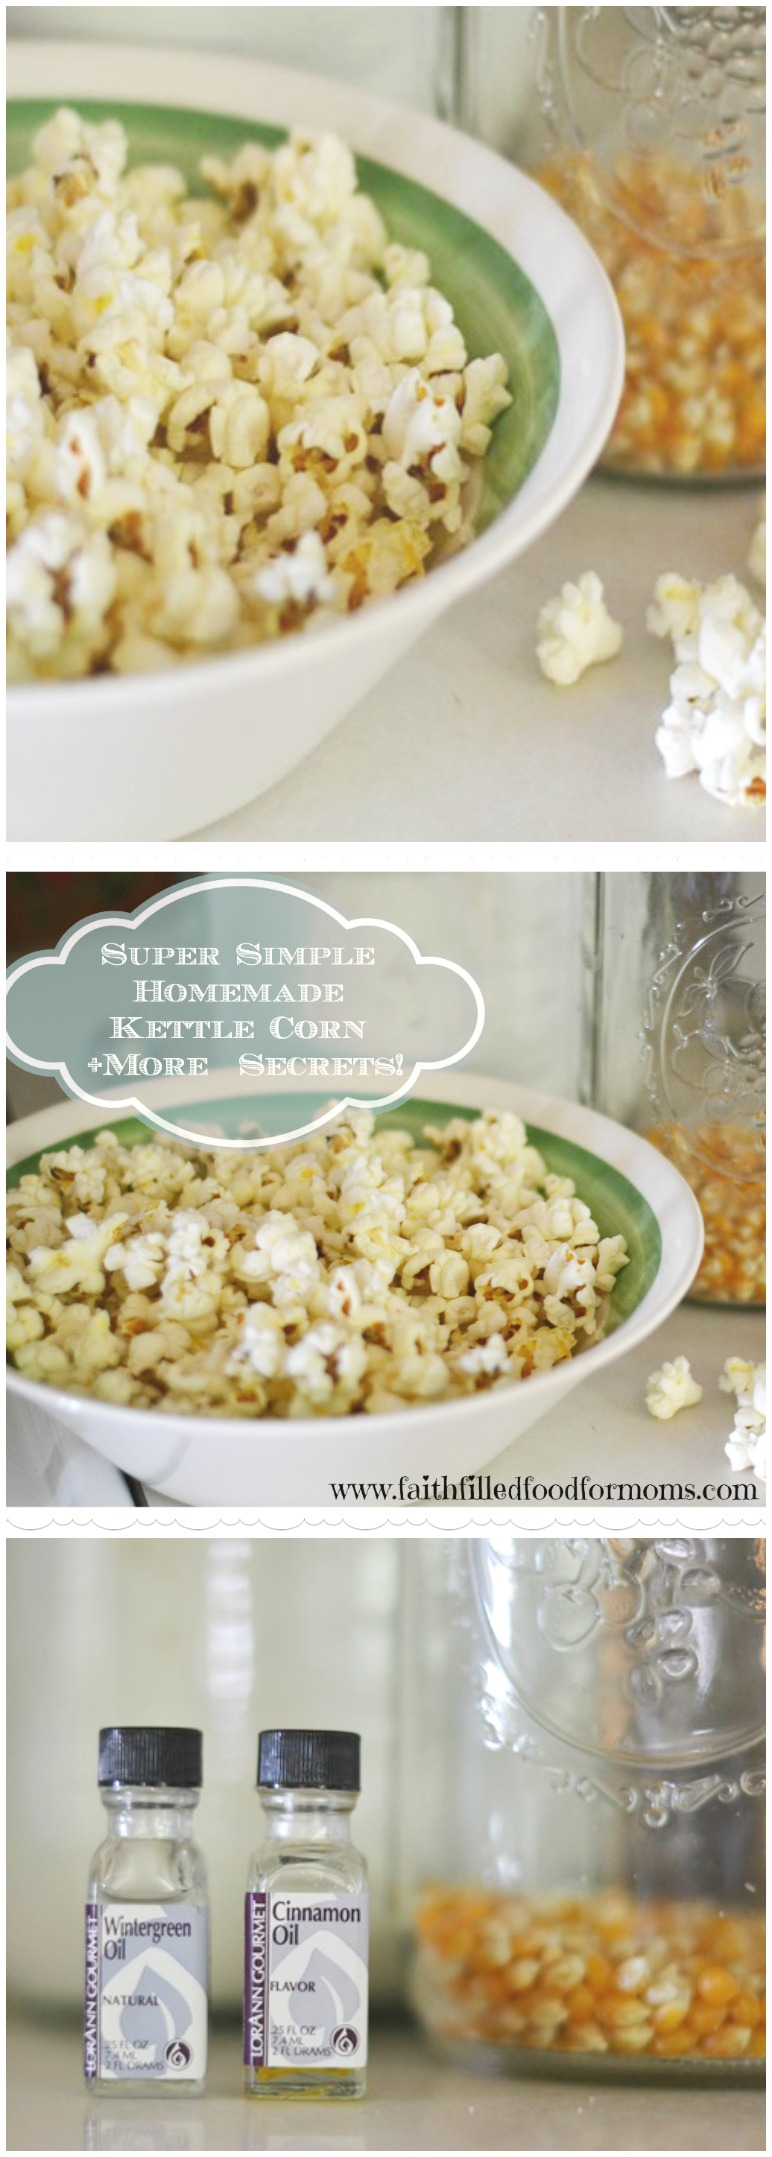 Switch up your popcorn and learn How to make Super Easy Homemade Kettle Corn with this recipe! You won't believe how amazing this stove top recipe is!  #snacks #homemade #faithfilledfoodformoms